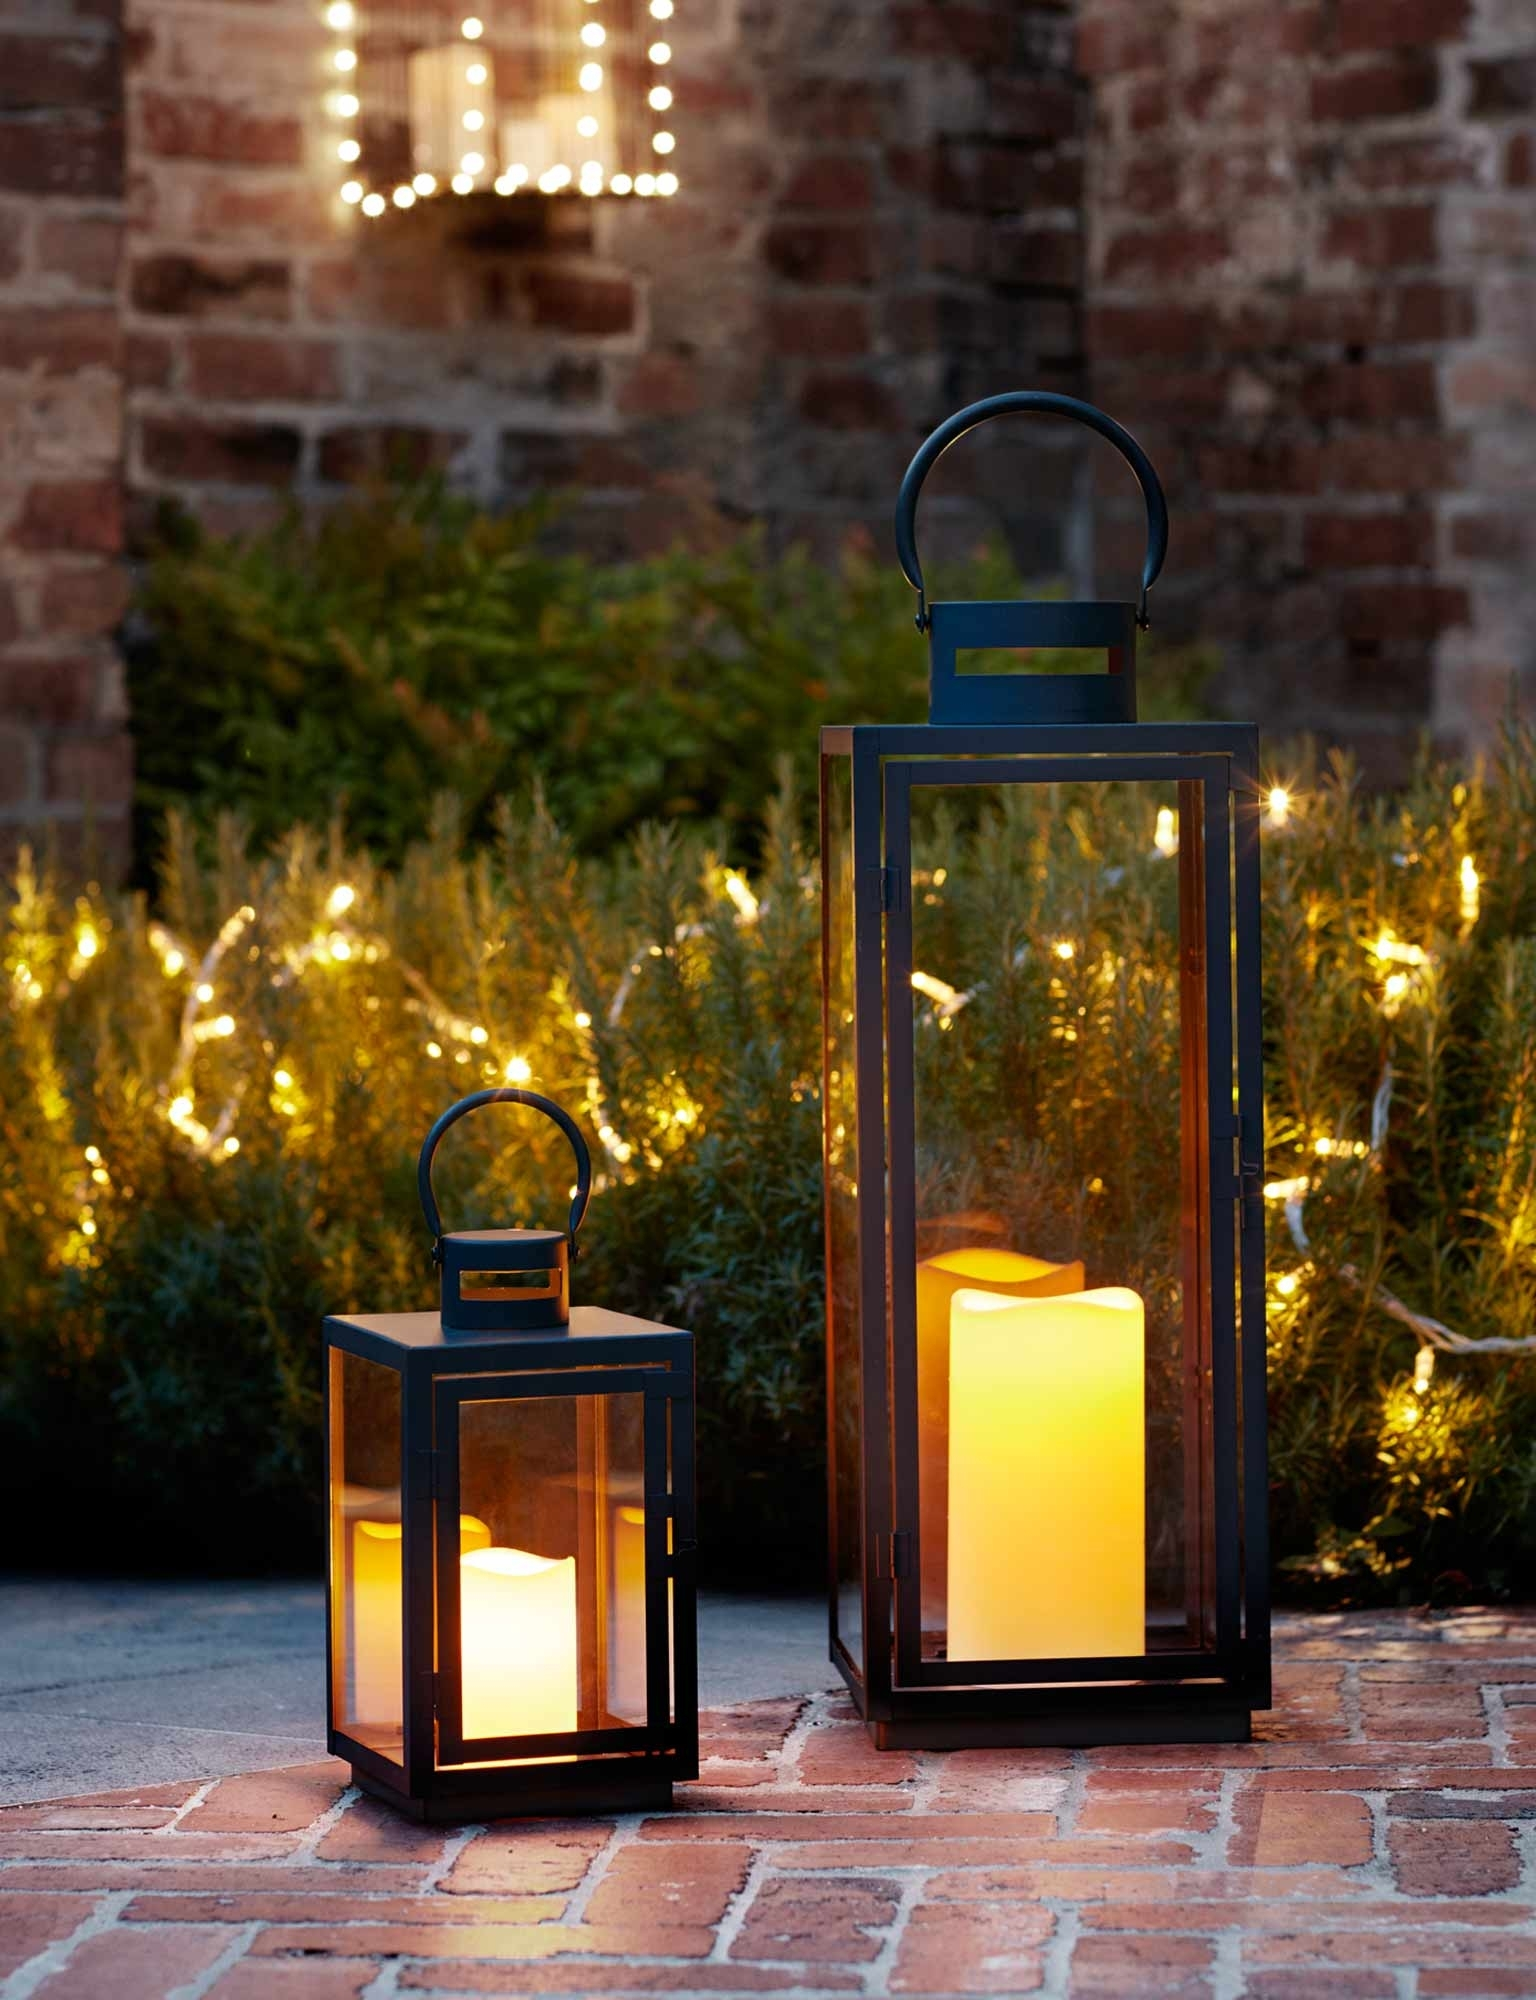 Garden Lighting Ideas | Inspiration | Lights4Fun.co.uk with regard to Outdoor Vintage Lanterns (Image 8 of 20)